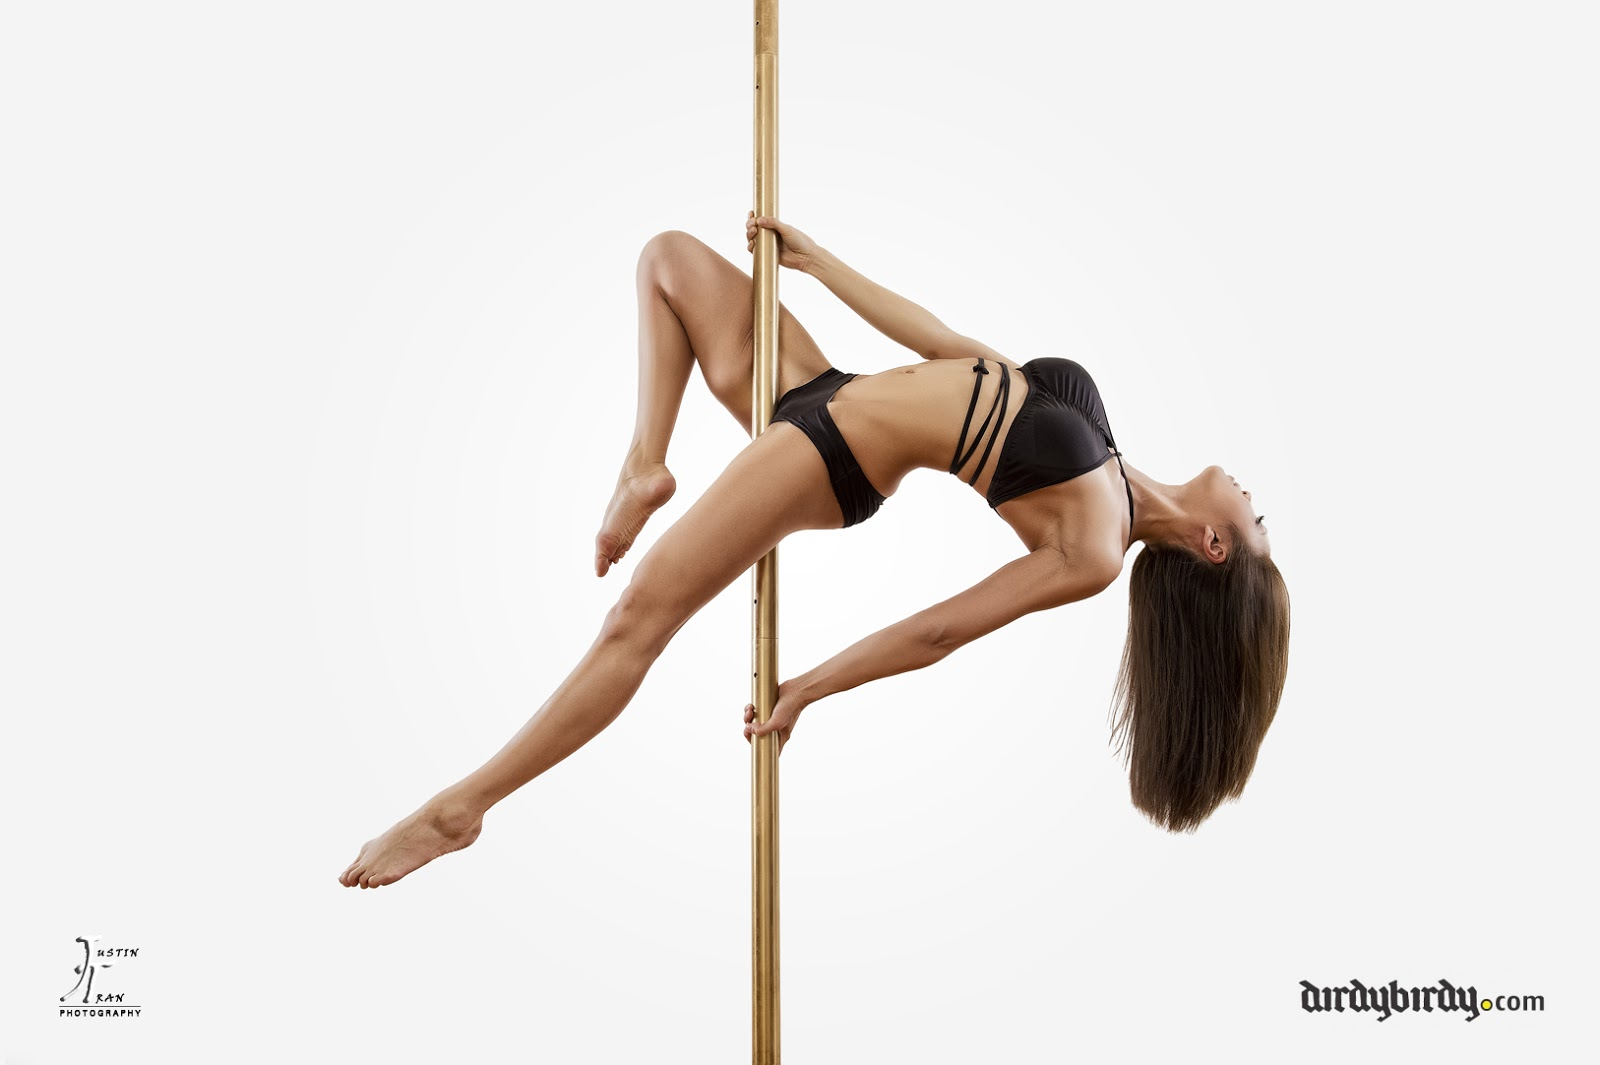 Capturing the Moment - The memories of that moment, stories within stories, and moments within moments. Pole-dancing fitness can be a confidence-builder. And that new confidence will give you a glow.